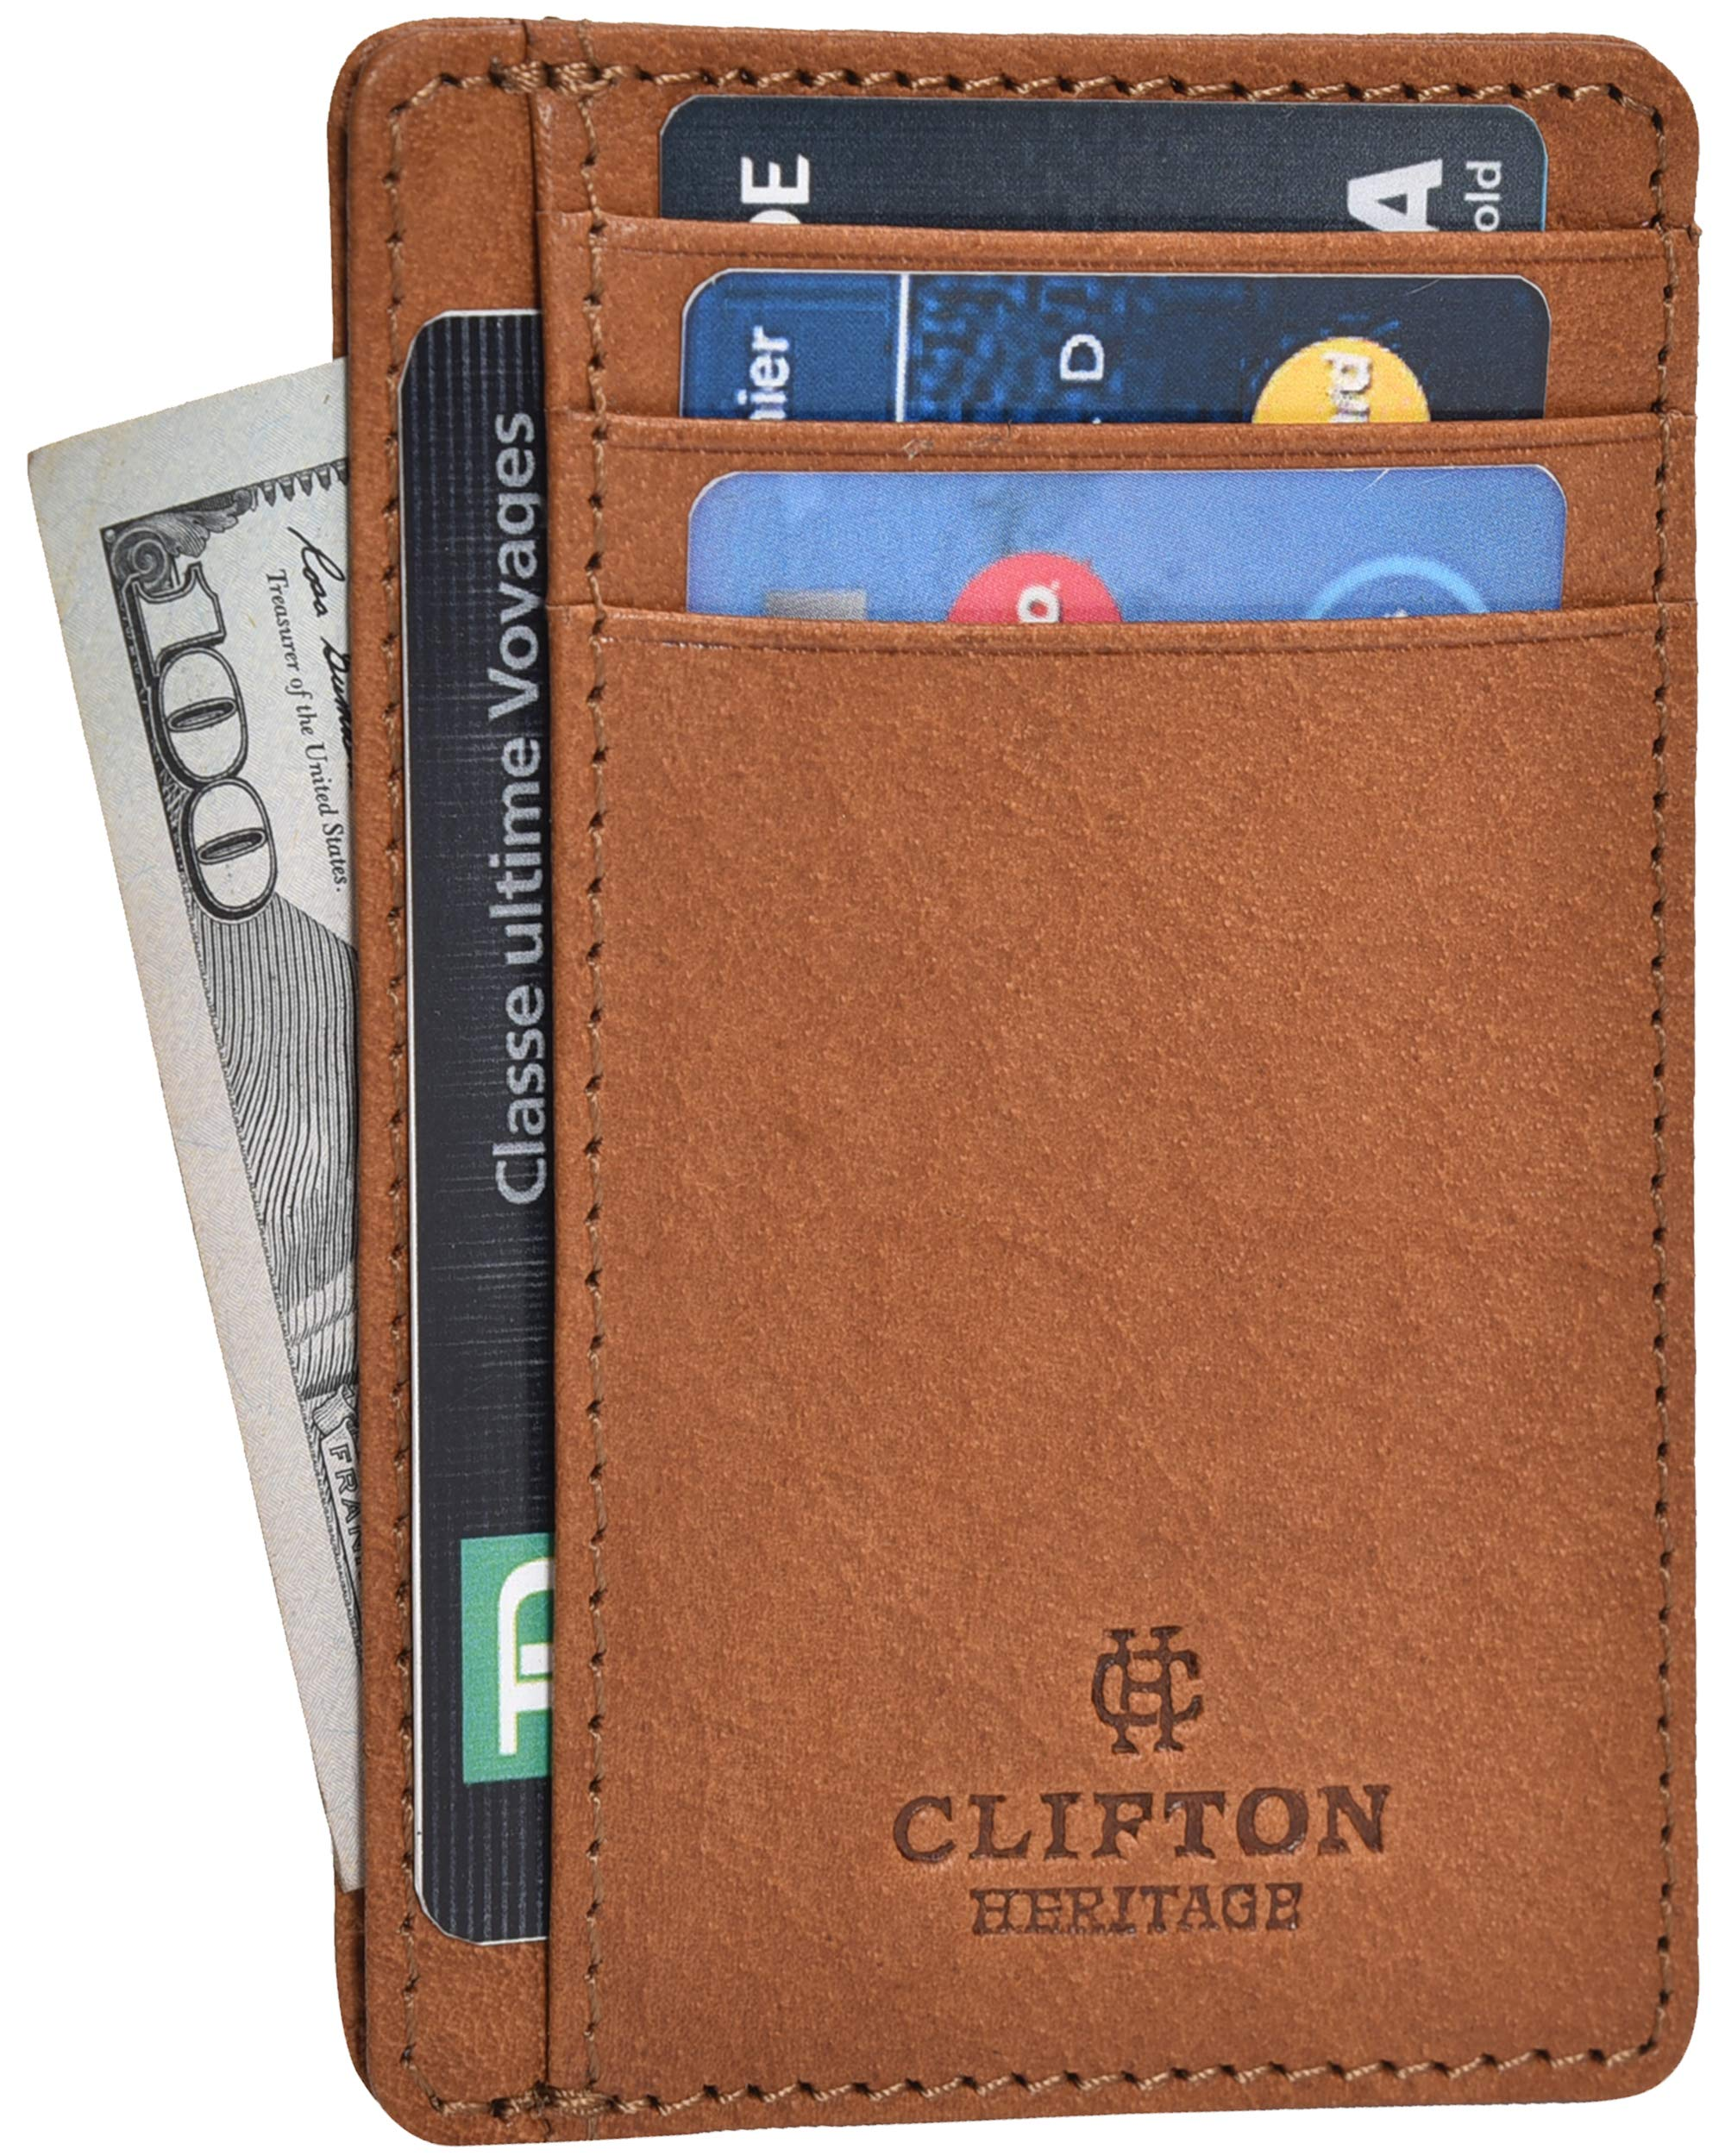 RFID Front Pocket Slim Wallets- Genuine Leather Handmade Minimalist Credit Card Holder By Clifton Heritage (Small, Cognac Vintage Wax) by Clifton Heritage